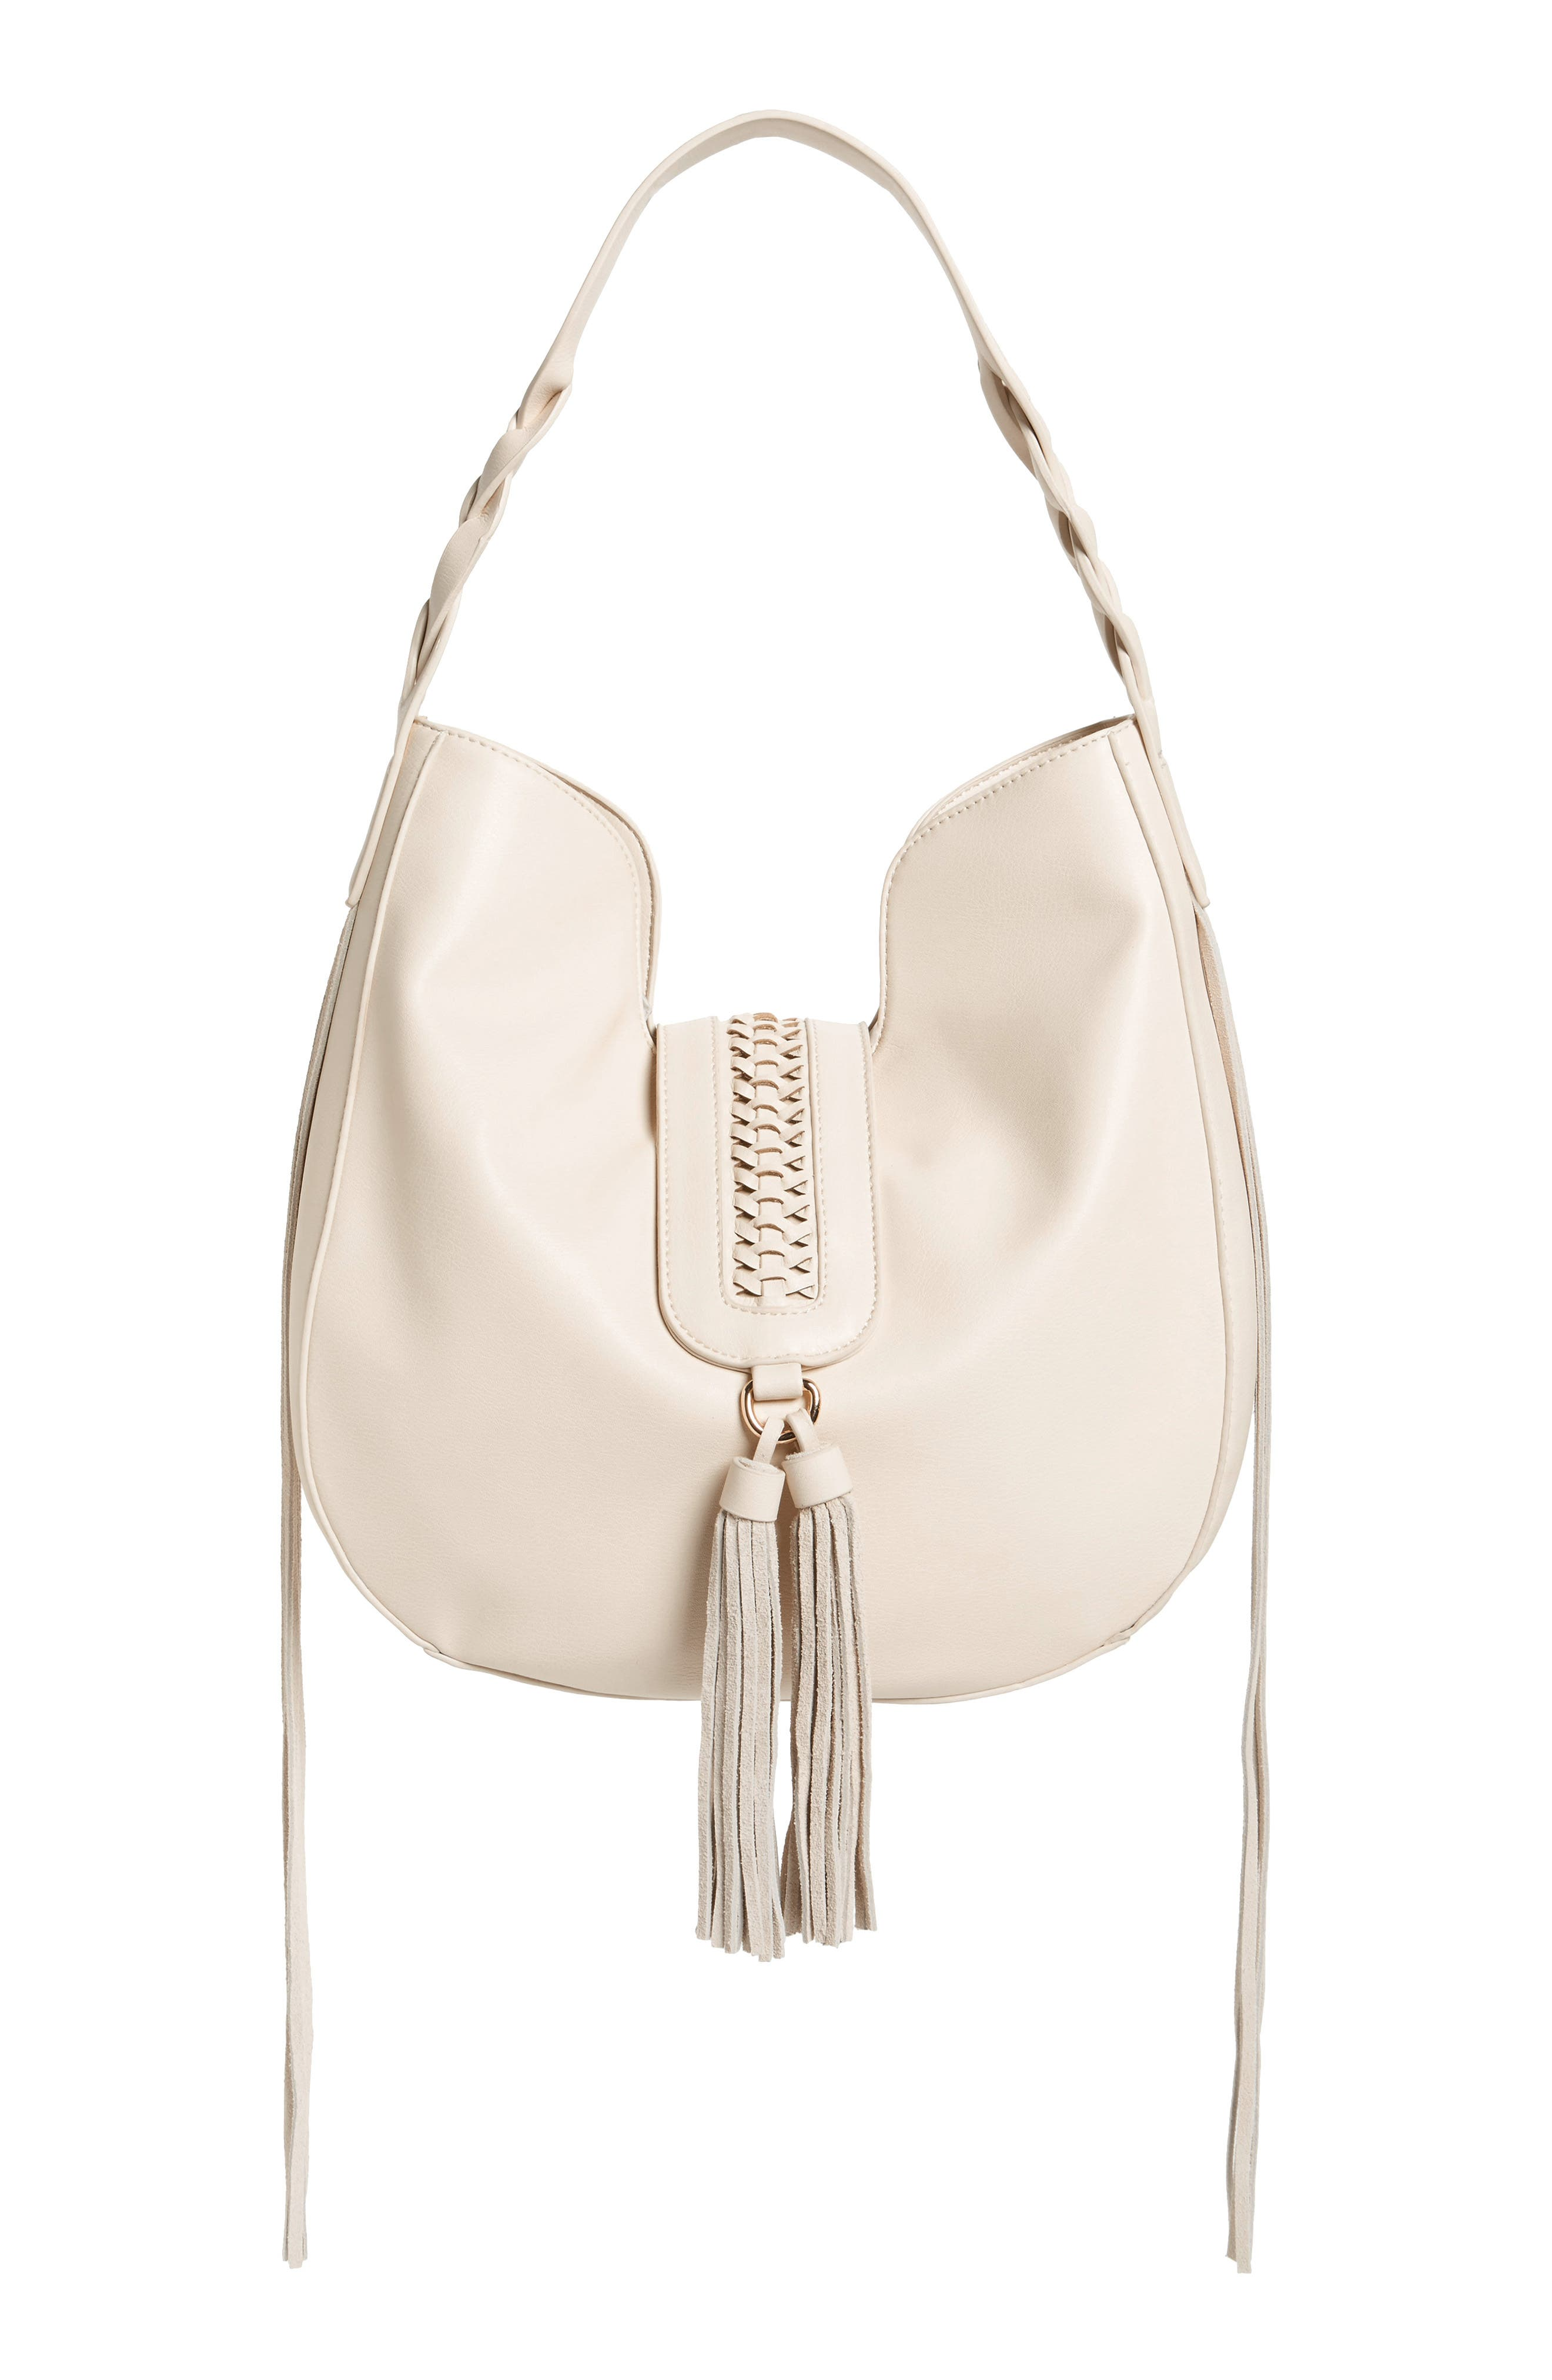 Alternate Image 1 Selected - Phase 3 Lace-Up Tassel Faux Leather Hobo